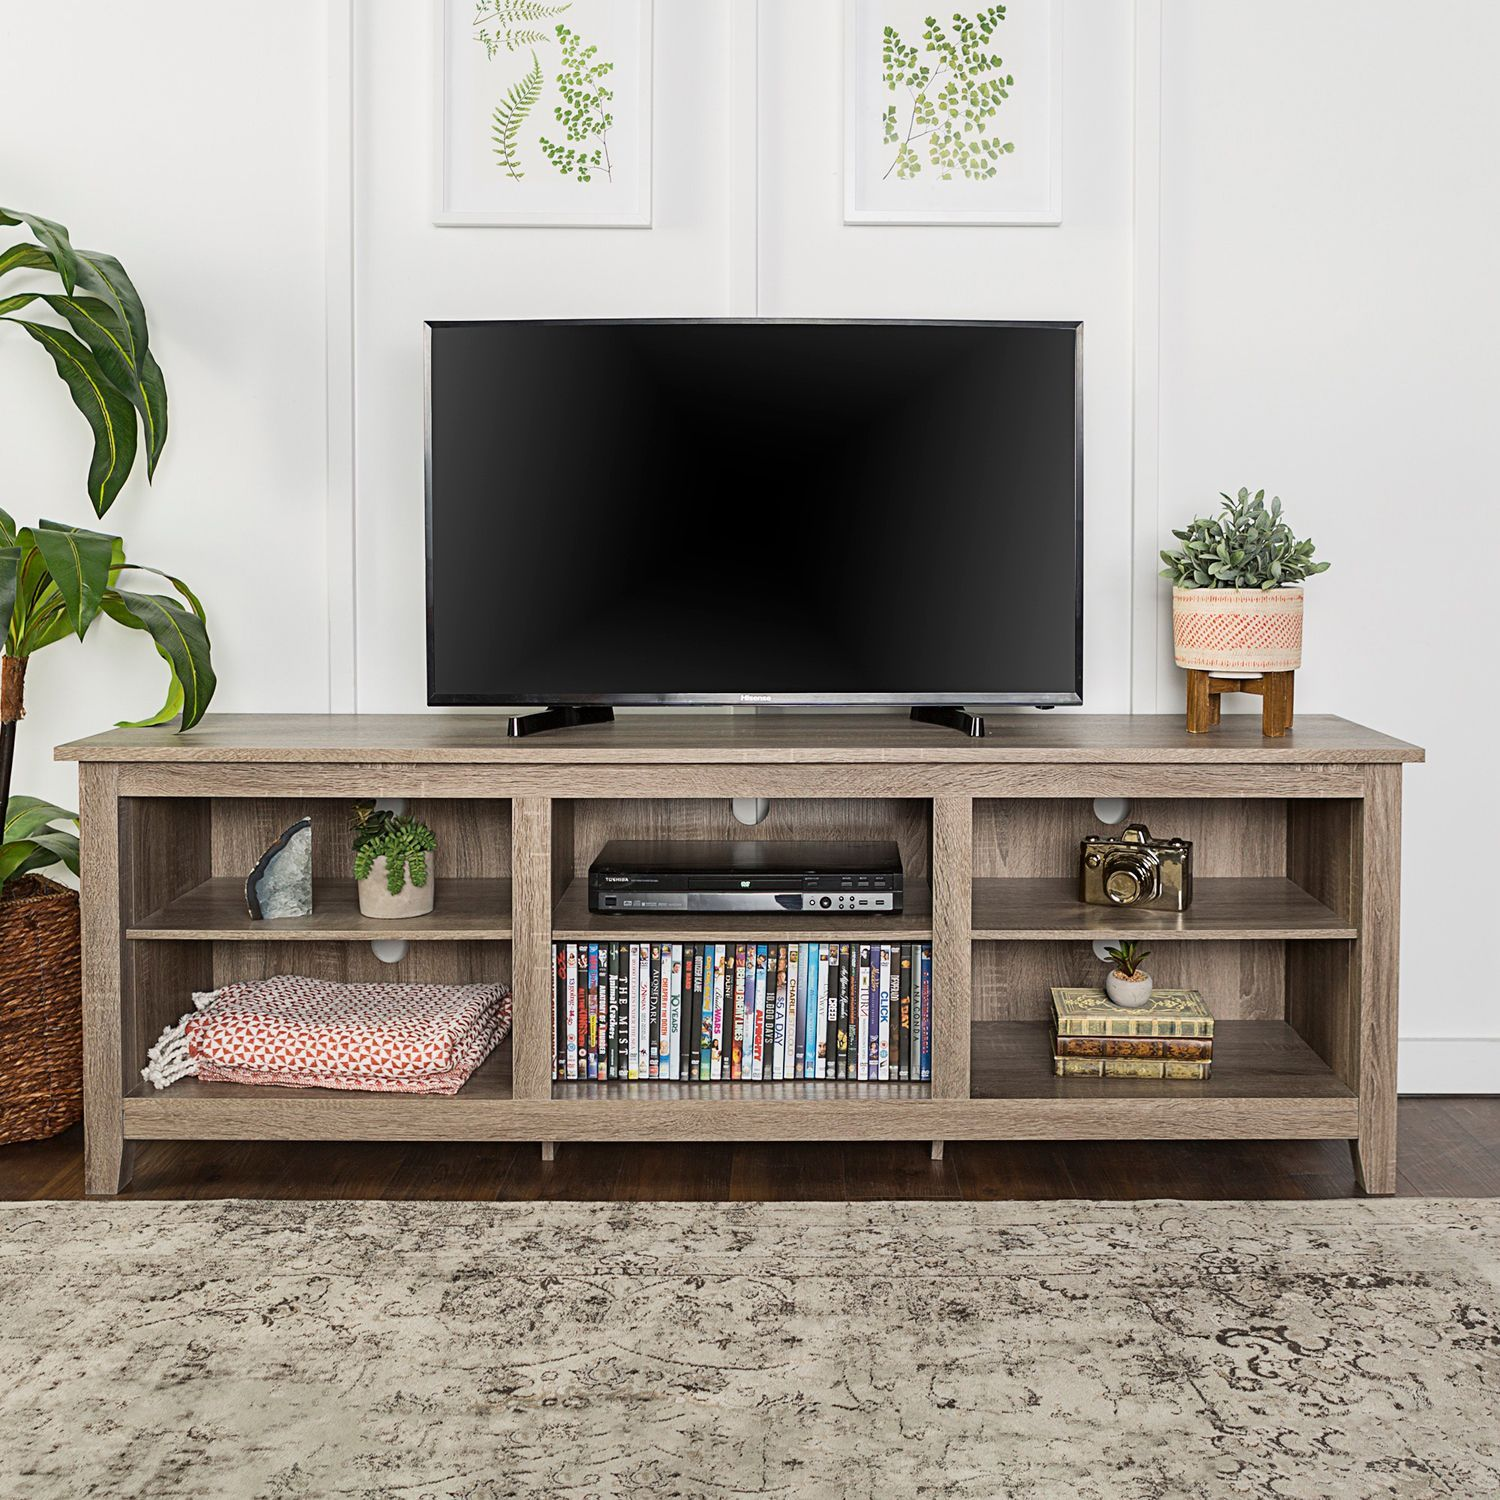 Null Tv Stand Furniture Tv Stand With Storage Tv Stand Wood